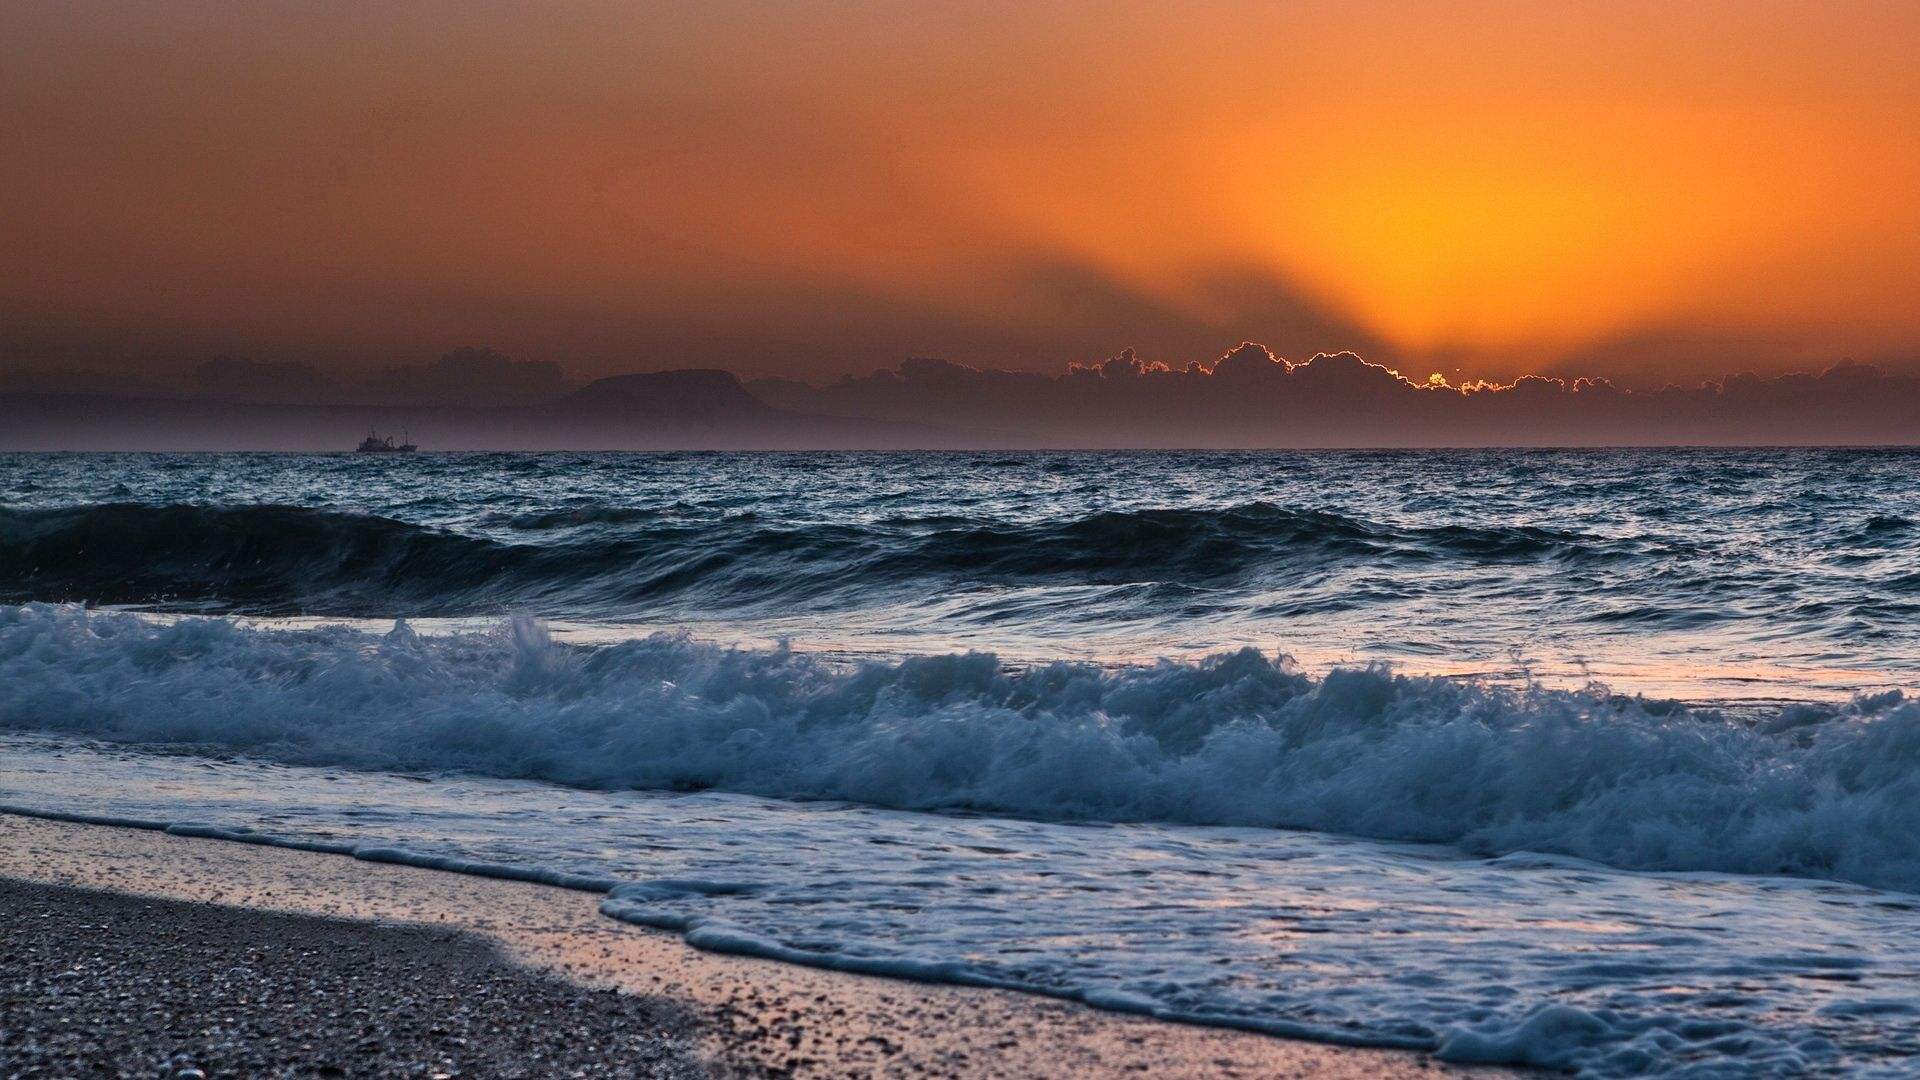 79012 free wallpaper 1080x2400 for phone, download images Nature, Sunset, Sea, Sun, Waves, Horizon, Mainly Cloudy, Overcast, Surf, Line, Noise 1080x2400 for mobile